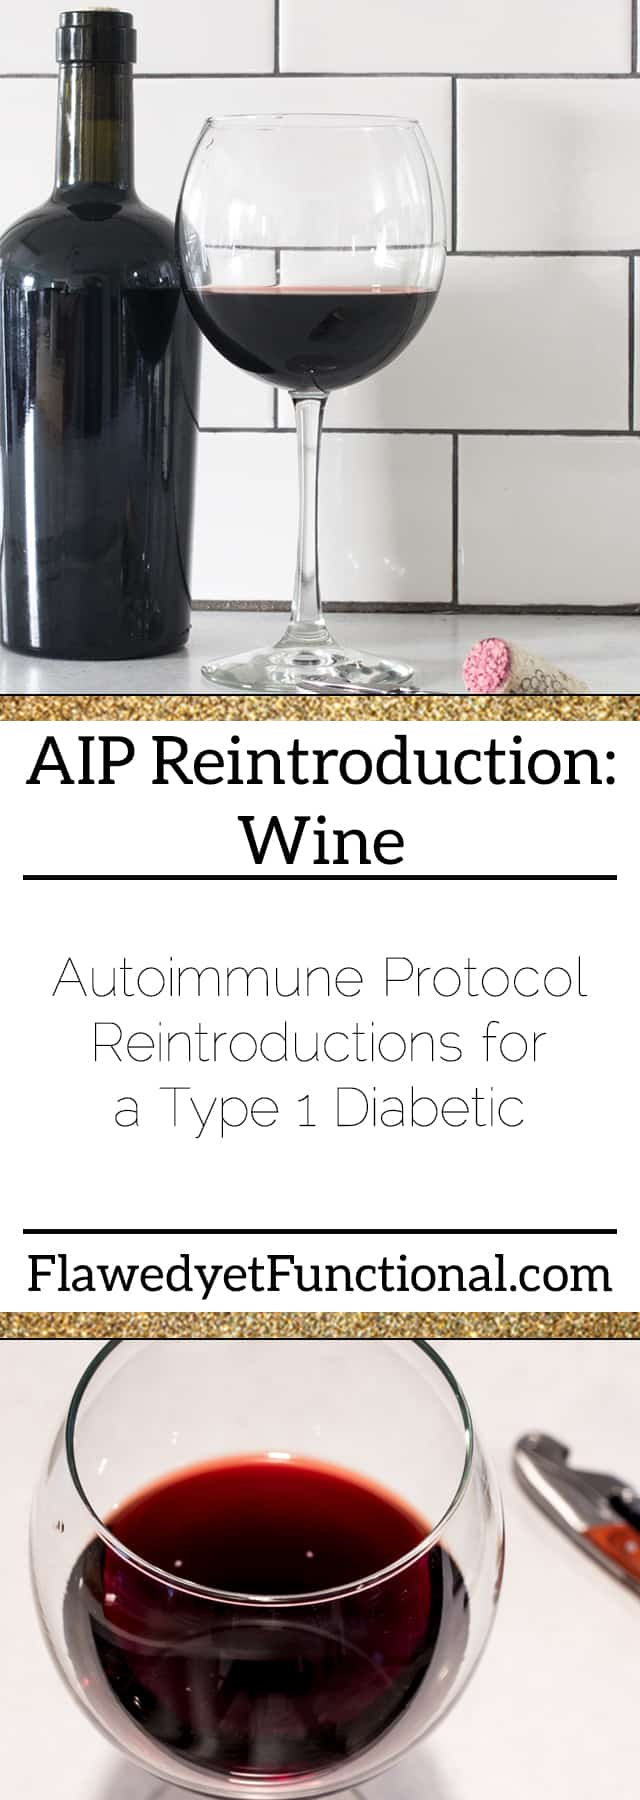 AIP Reintroduction Wine